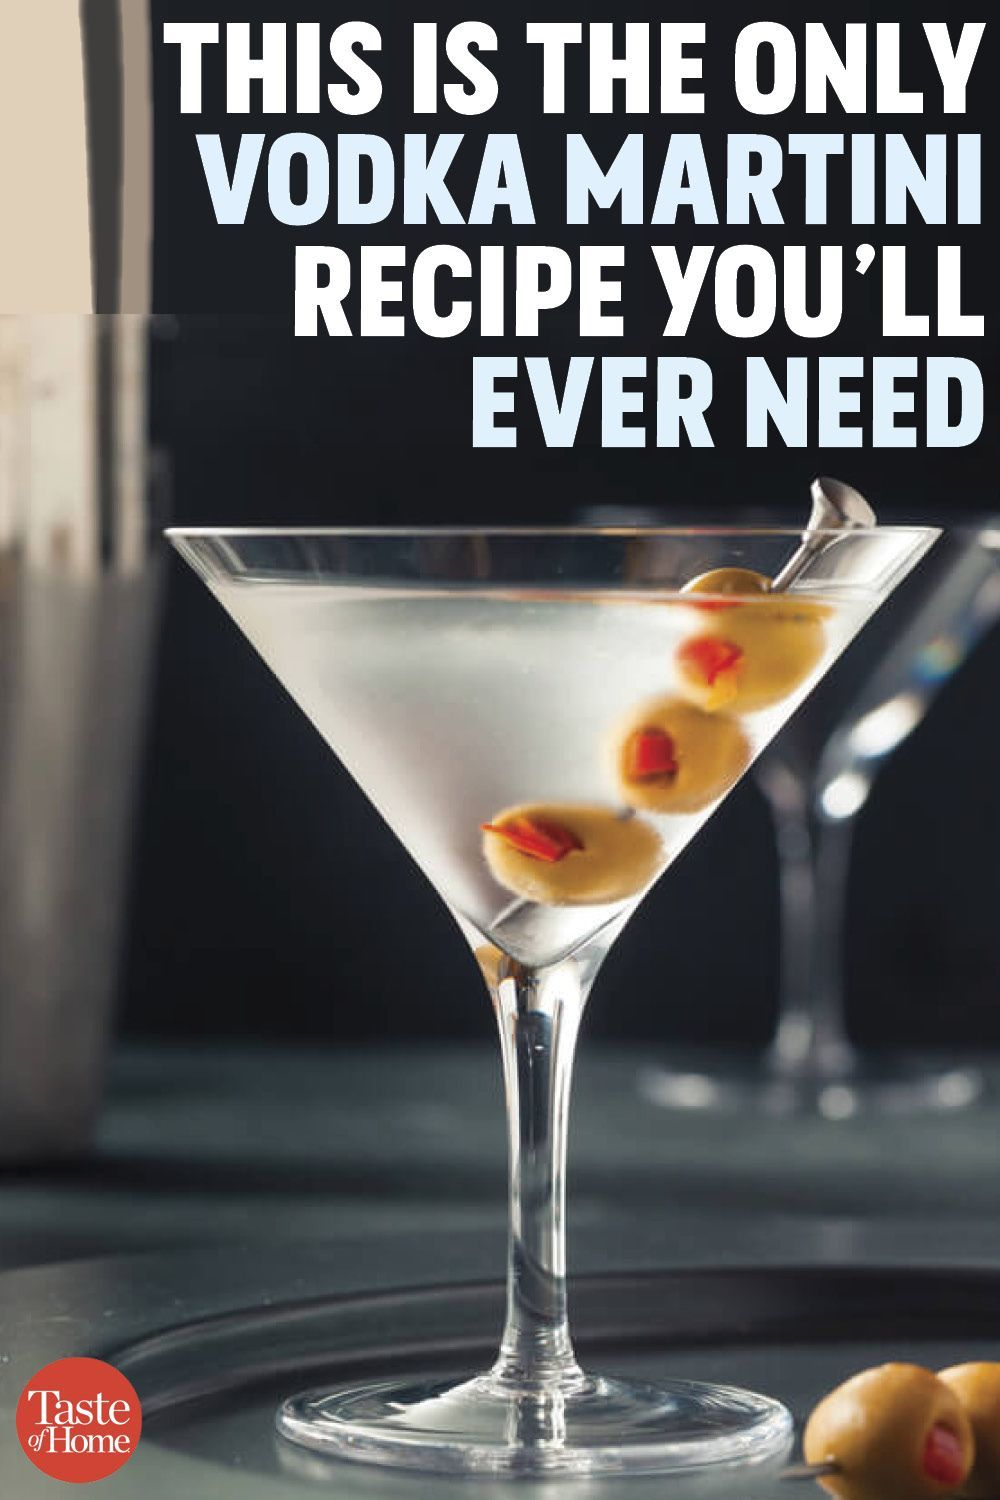 This Is the Only Vodka Martini Recipe You'll Ever Need